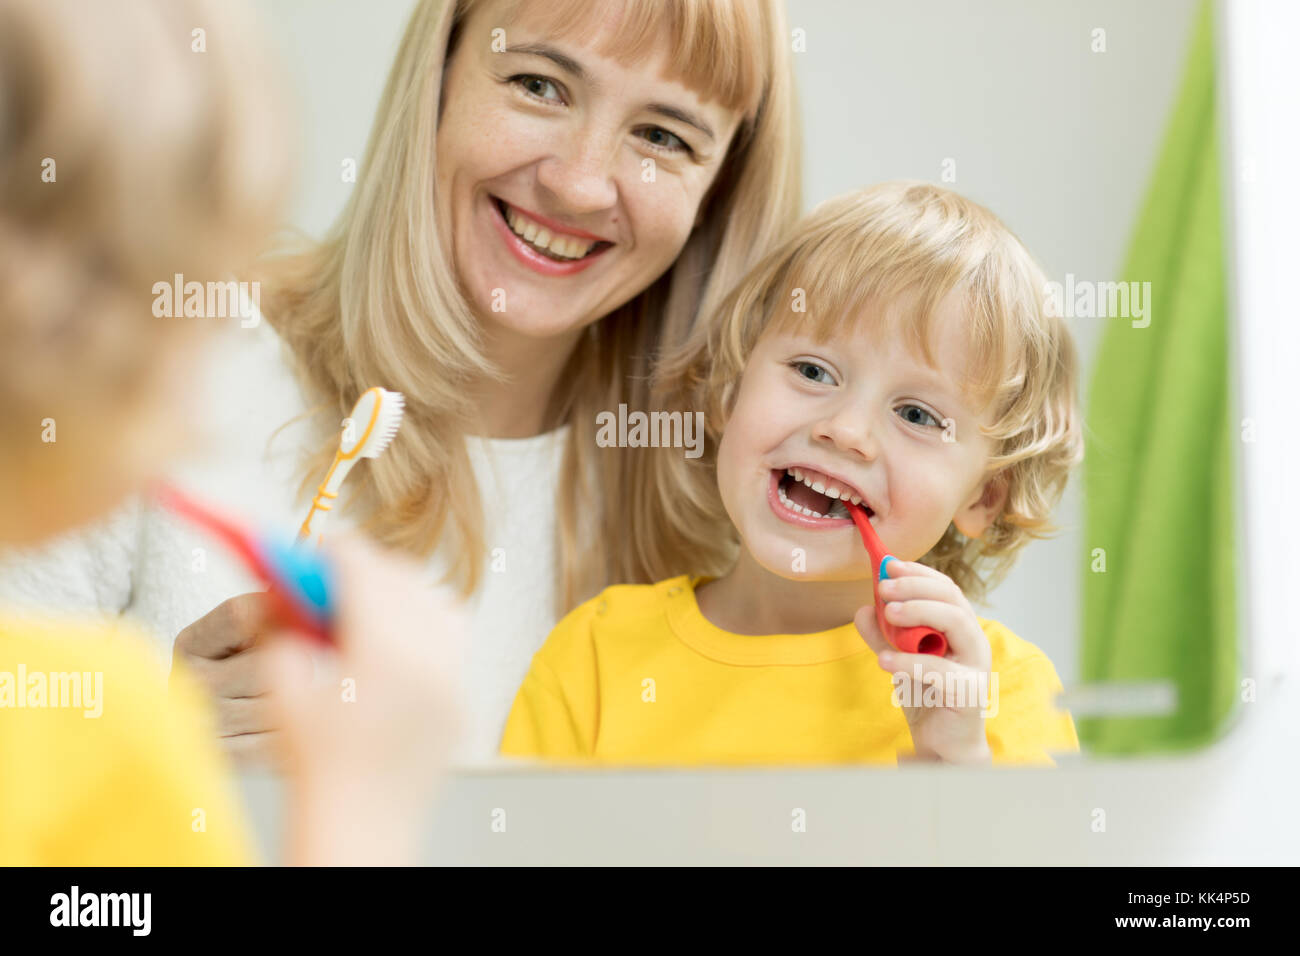 L'enseignement de mère enfant le brossage des dents Photo Stock